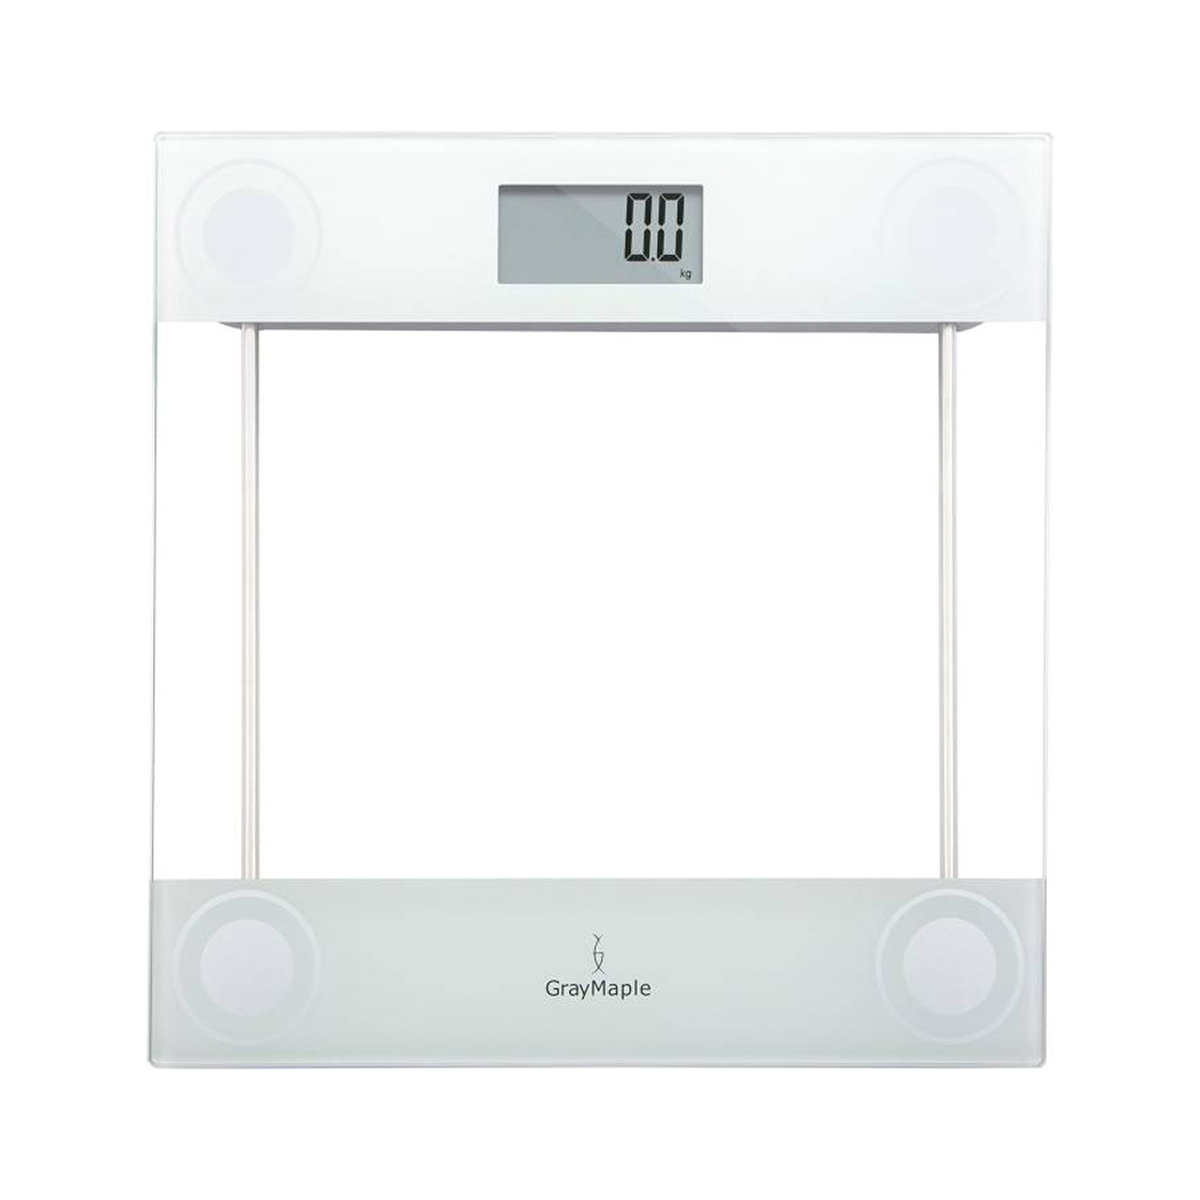 WHITE DIGITAL BODY WEIGHT SCALE